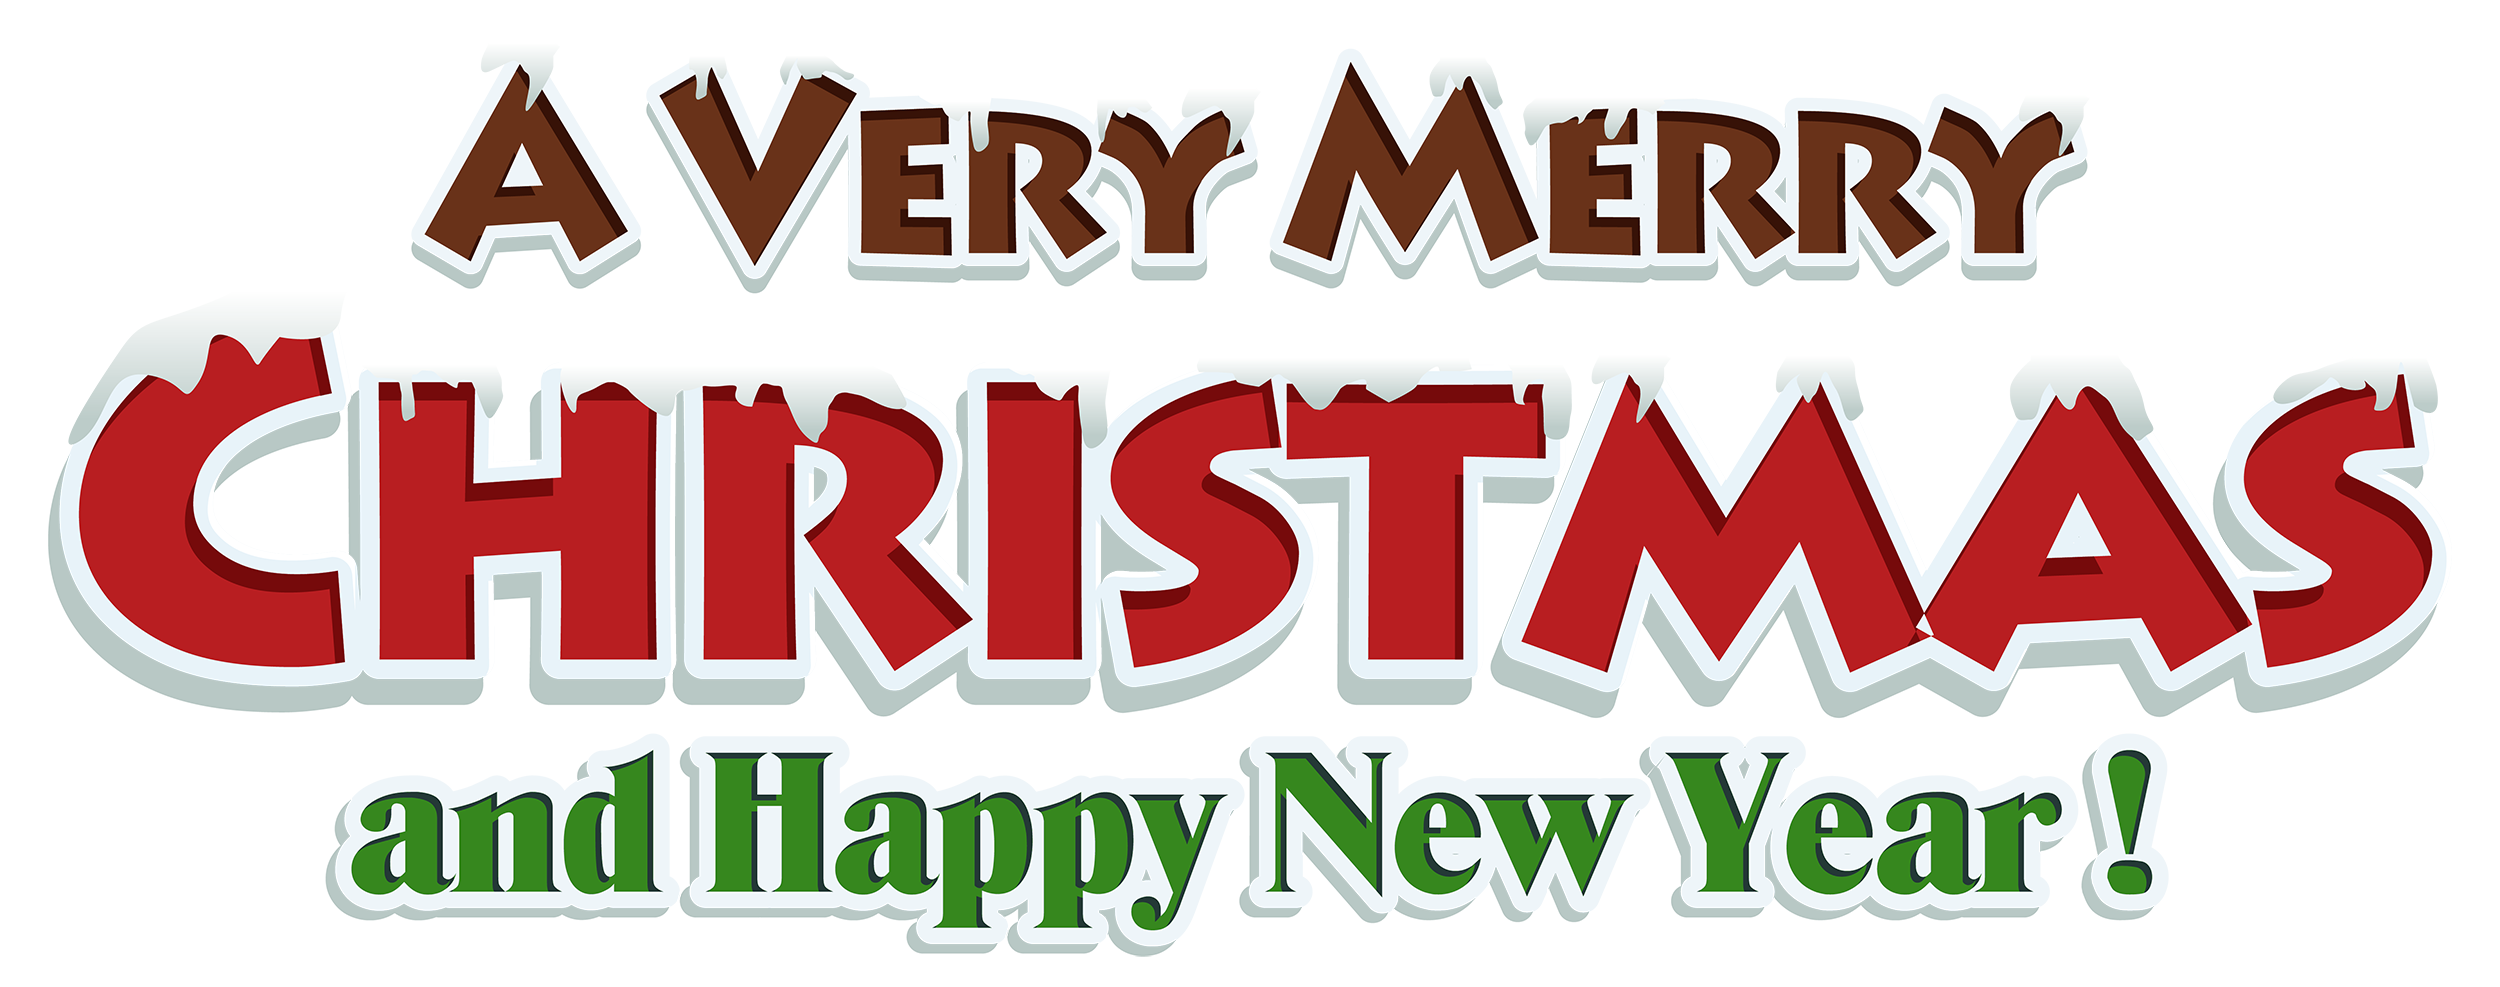 2017 clipart merry christmas. Red text decor png